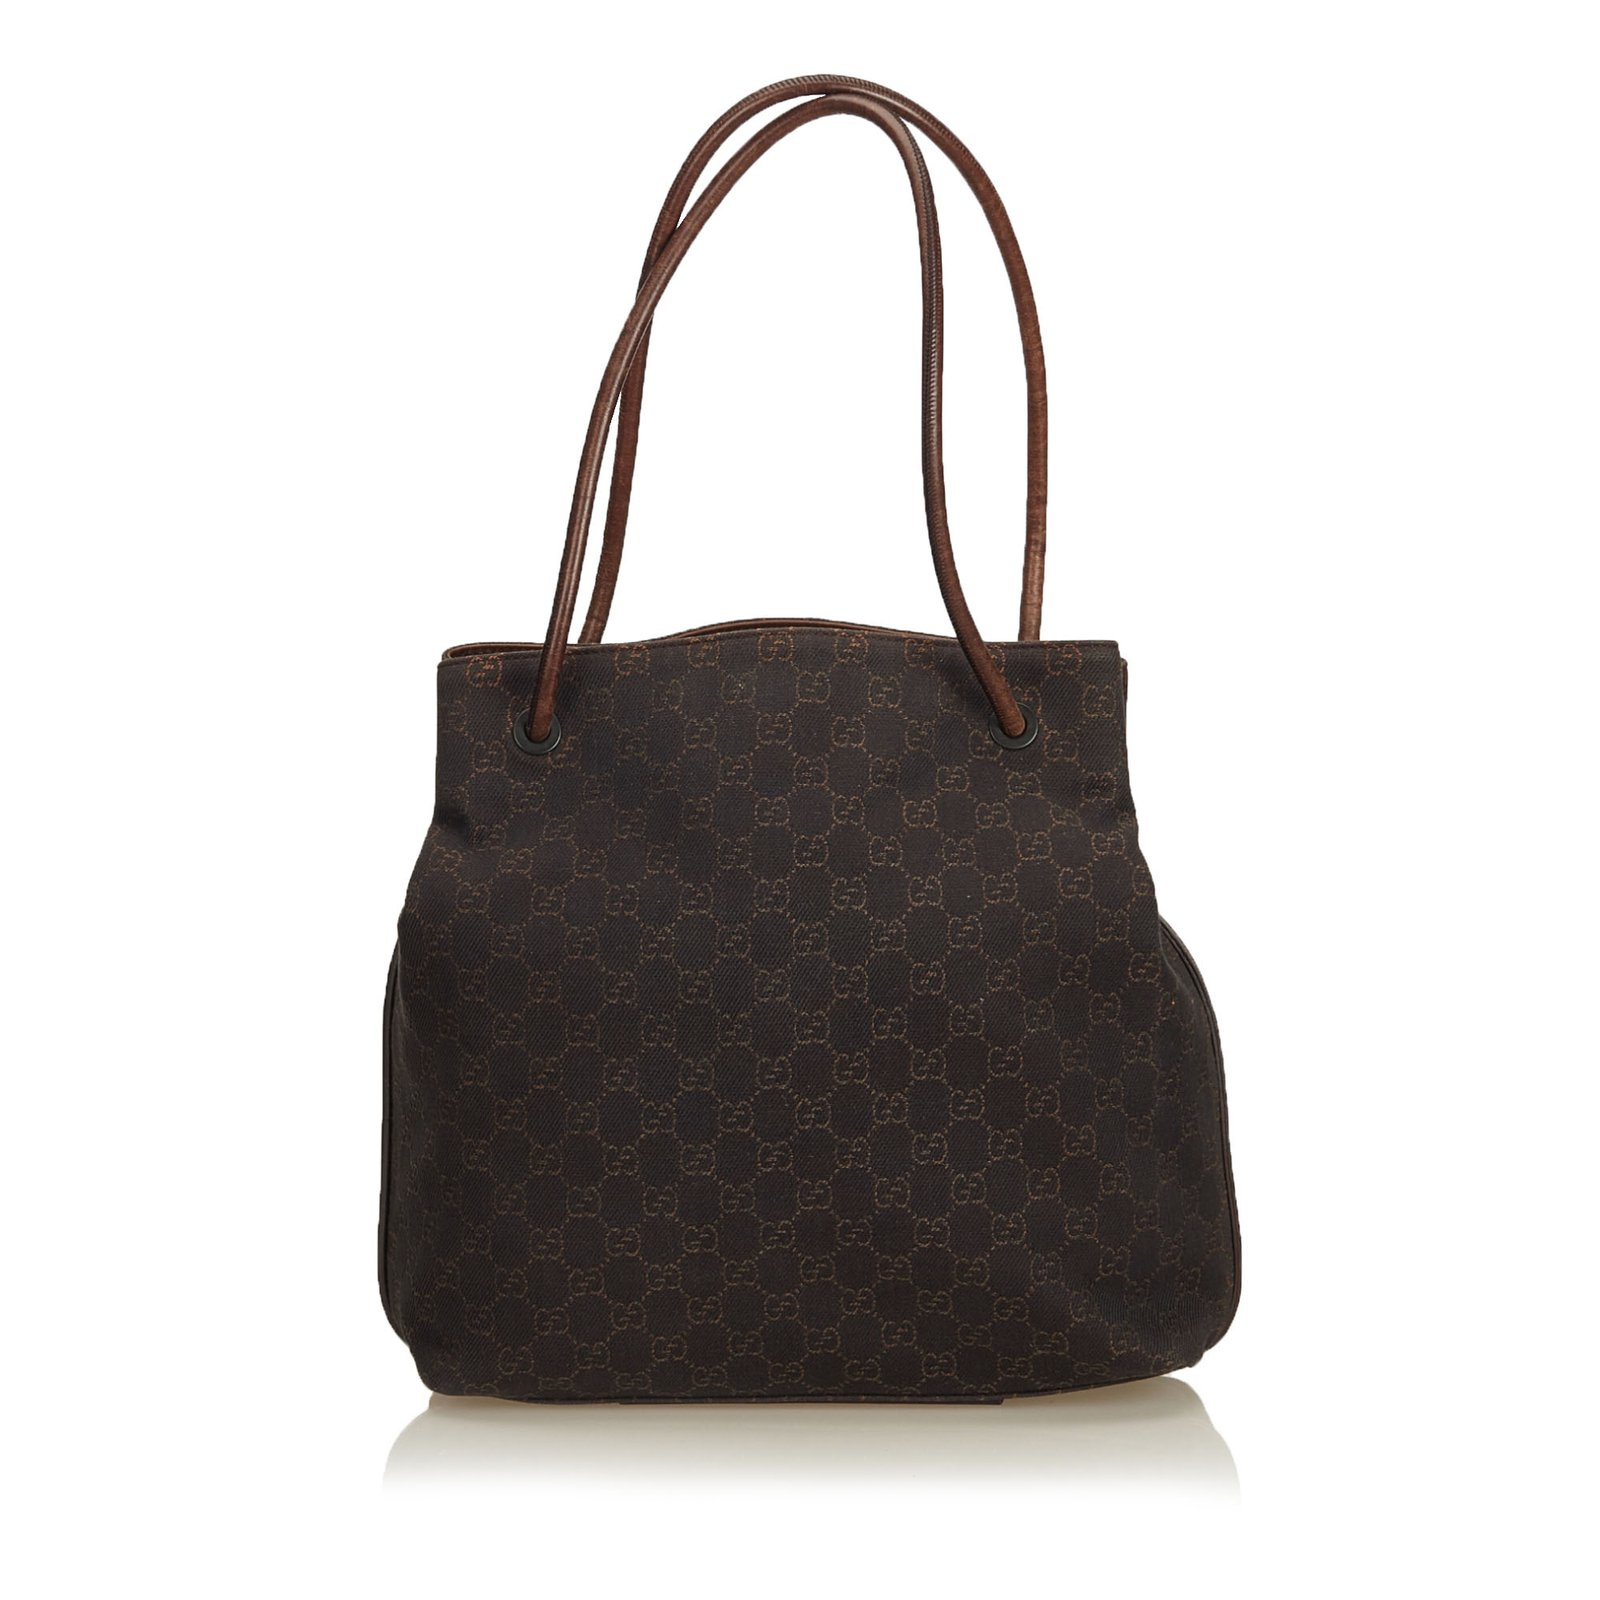 0eb7216228f1 Gucci GG Canvas Tote Totes Leather,Cloth,Pony-style calfskin,Cloth Brown